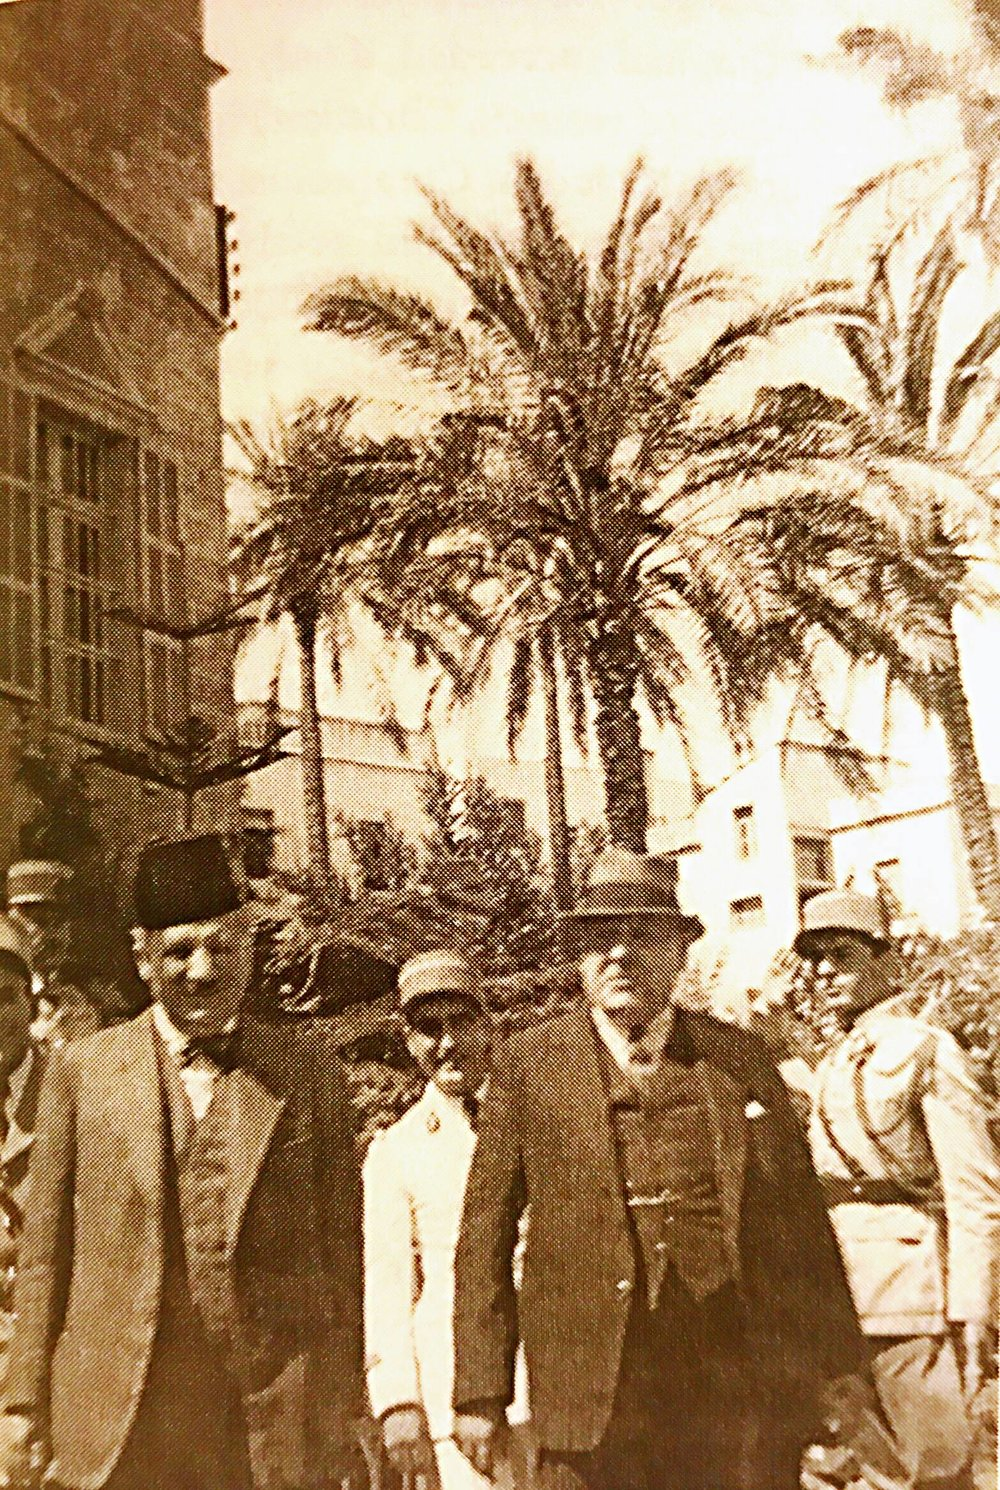 NEW ARCHIVE UPDATE - Lebanon Archive IndexBeirut Archive Index20 JUNE 2018: the 1940-1949 archive has been uploaded and ready for reading. It is a bit longer than usual with extra images as it is the decade of Lebanon's independence. We hope you all like this special edition, and hope that it is informative enough. Enjoy reading!Please leave your comments, likes and recommendations on the discussion tab at the bottom of the archive!- Archive Lebanon